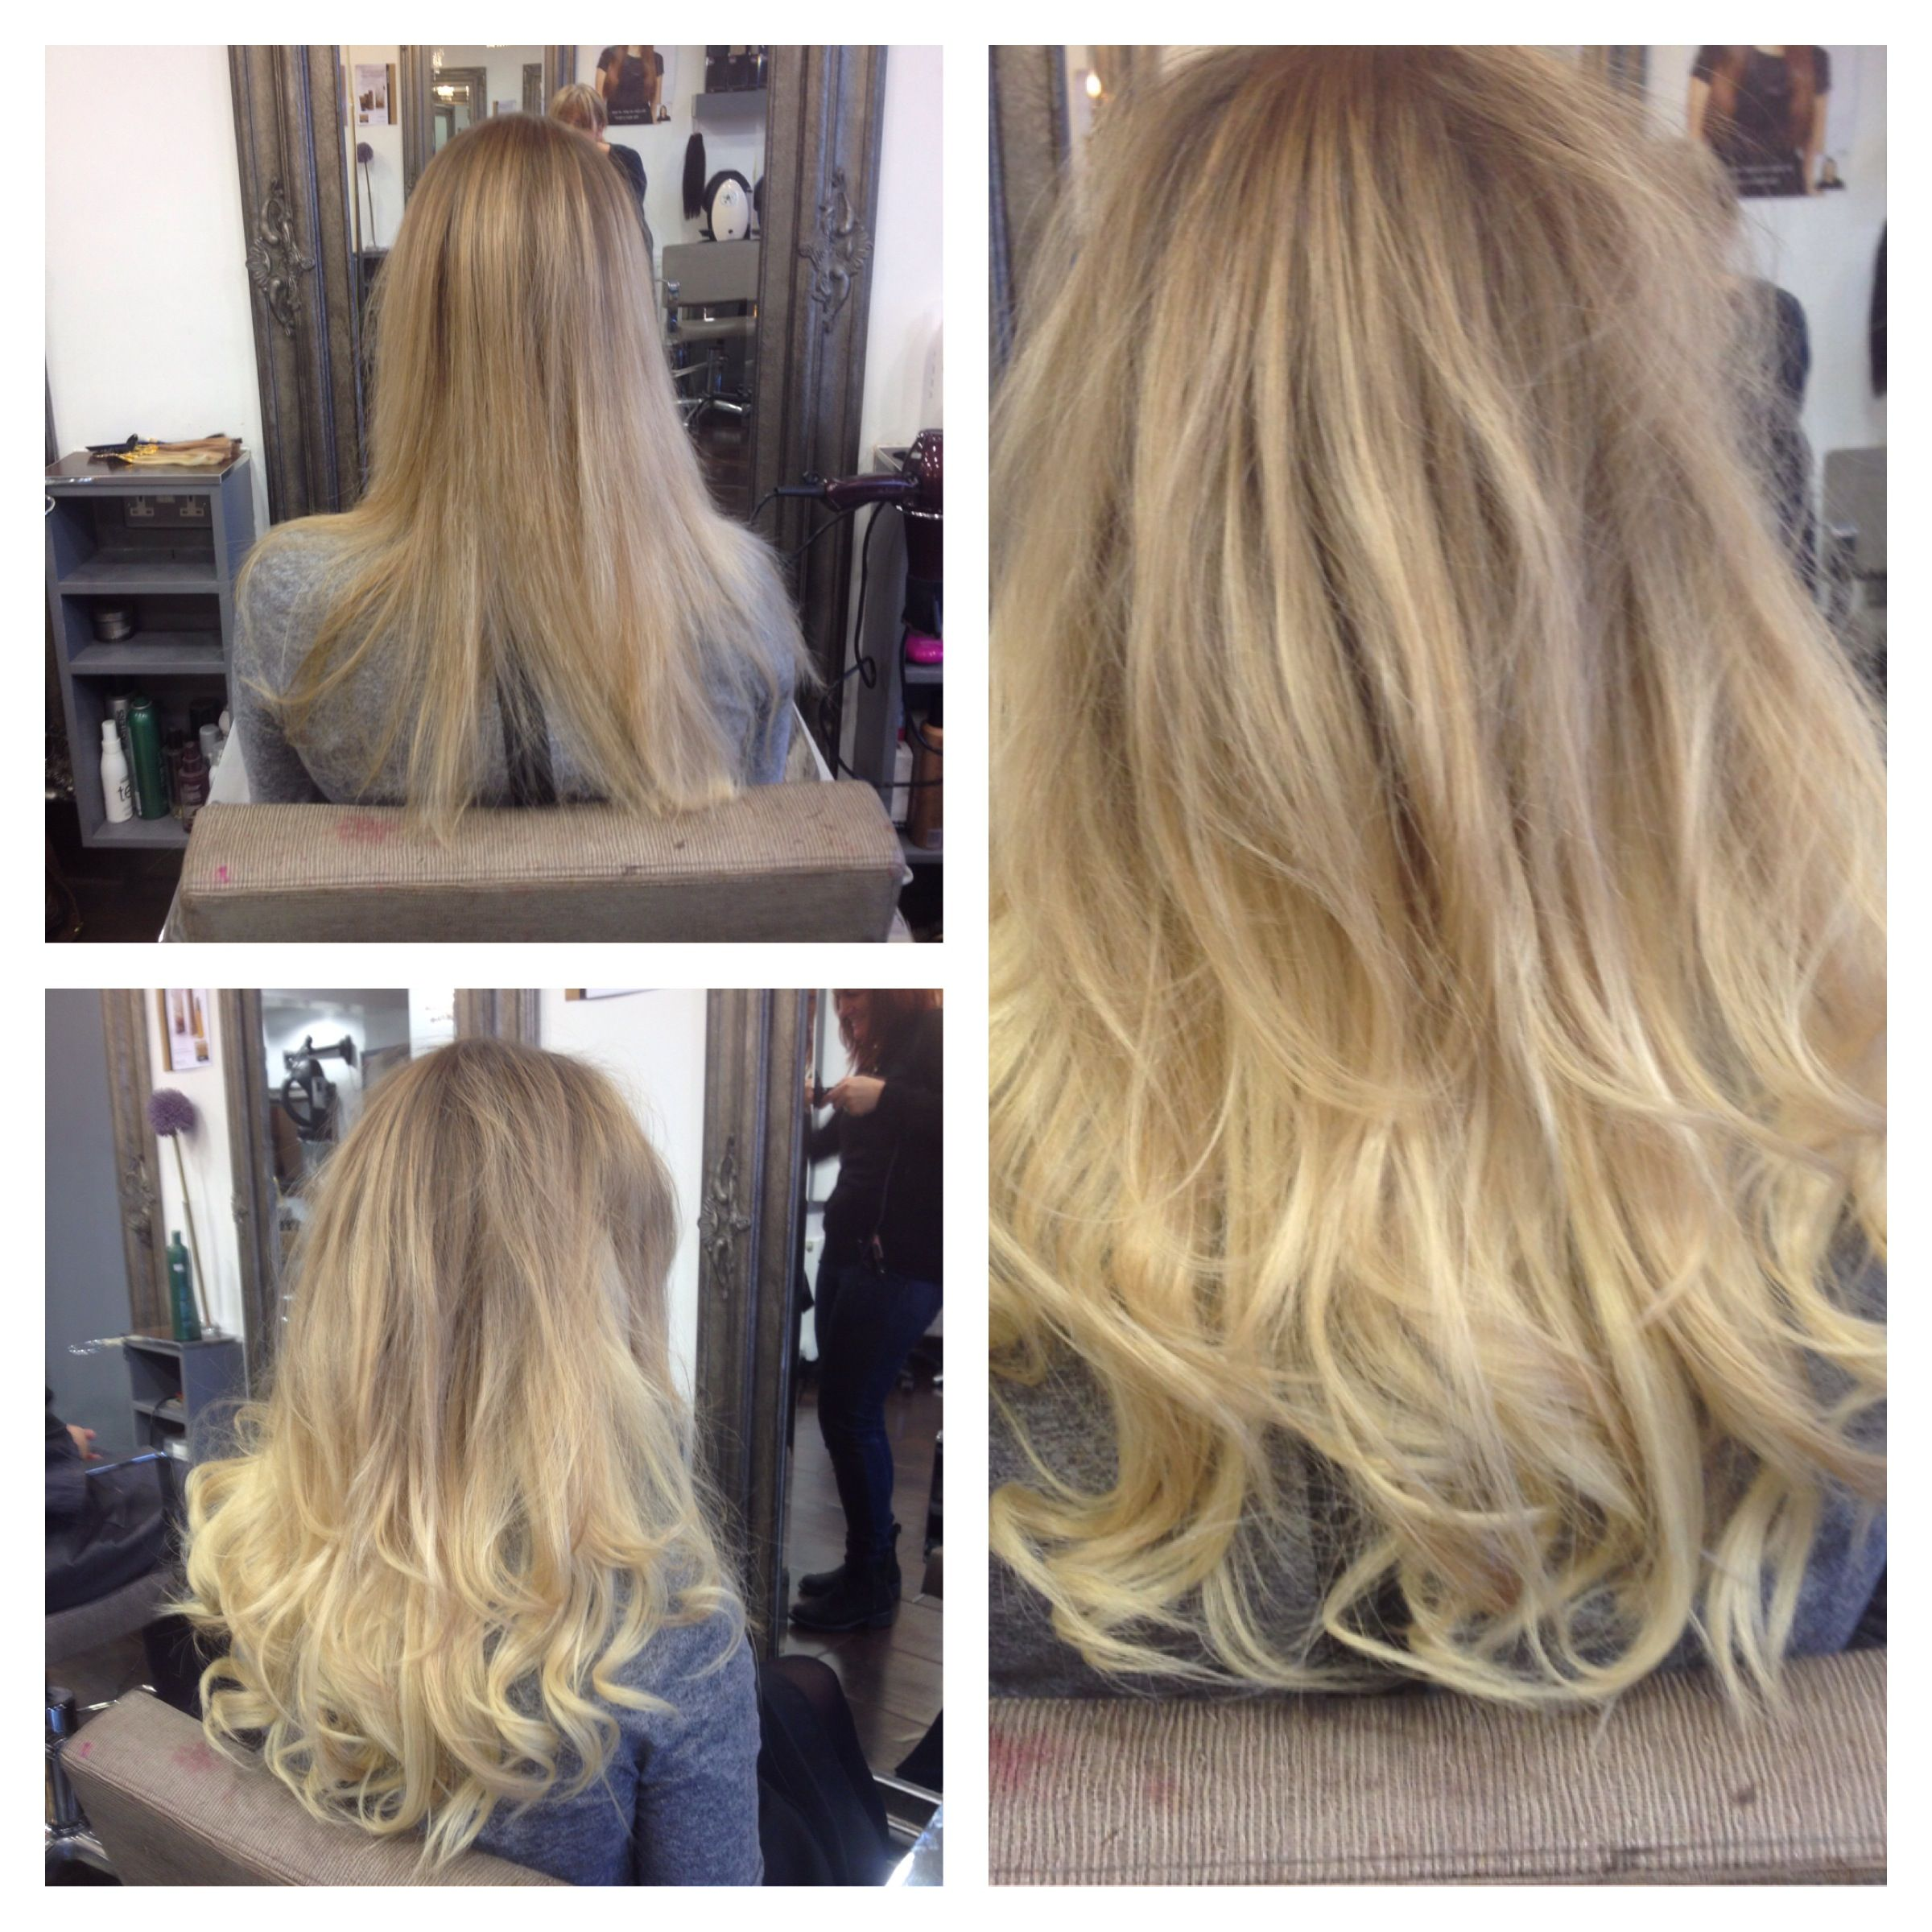 Big Hugs To The Team At Colour Lounge Who Recently Styled A Golden